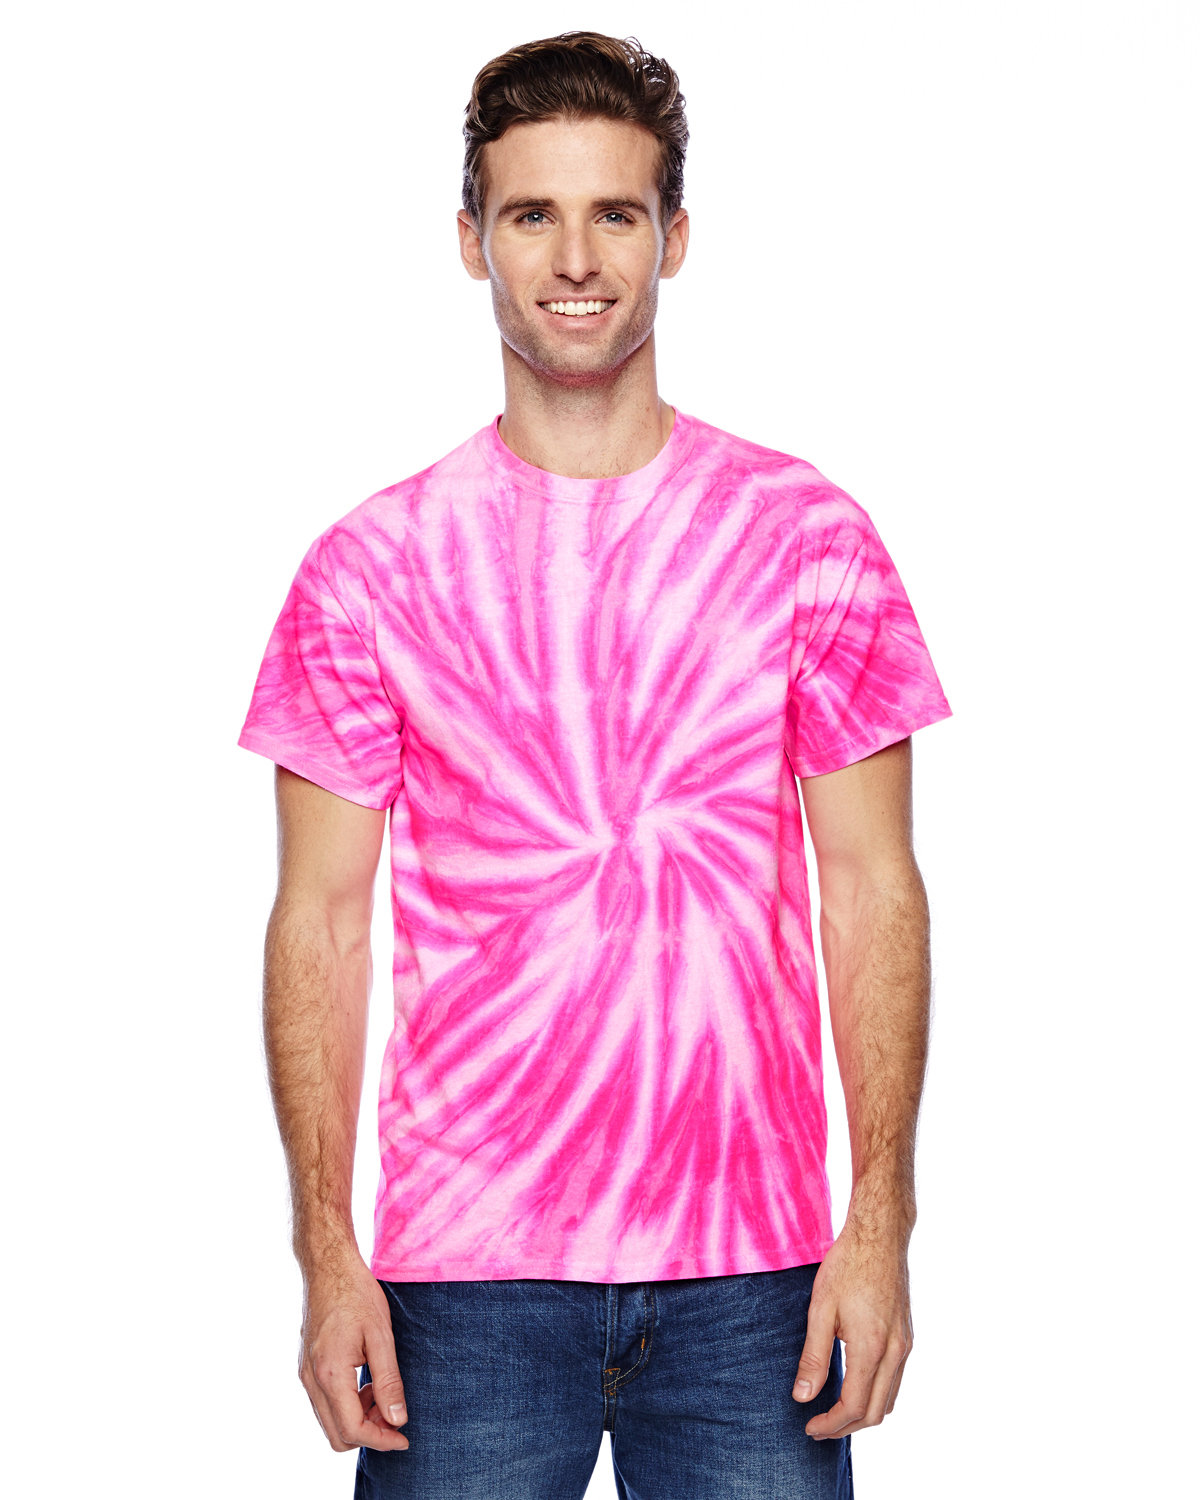 Tie-Dye Adult 100% Cotton Twist Tie-Dyed T-Shirt NEON BUBBLEGUM